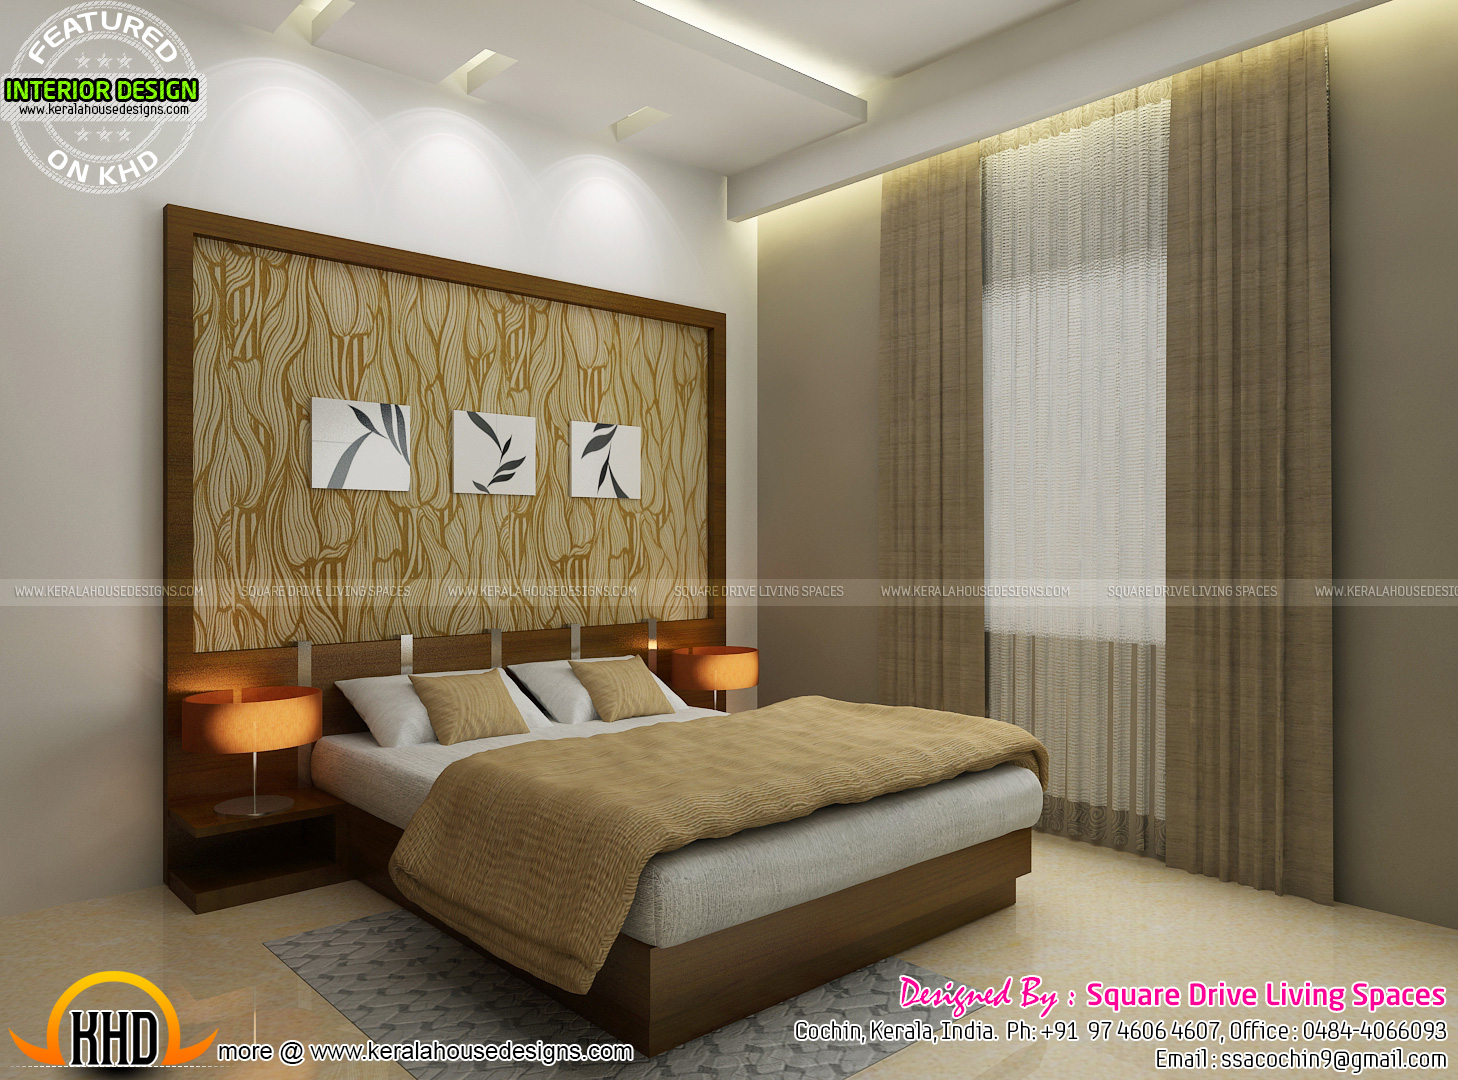 Interior designs of master bedroom living kitchen and for Interior design for living room and bedroom